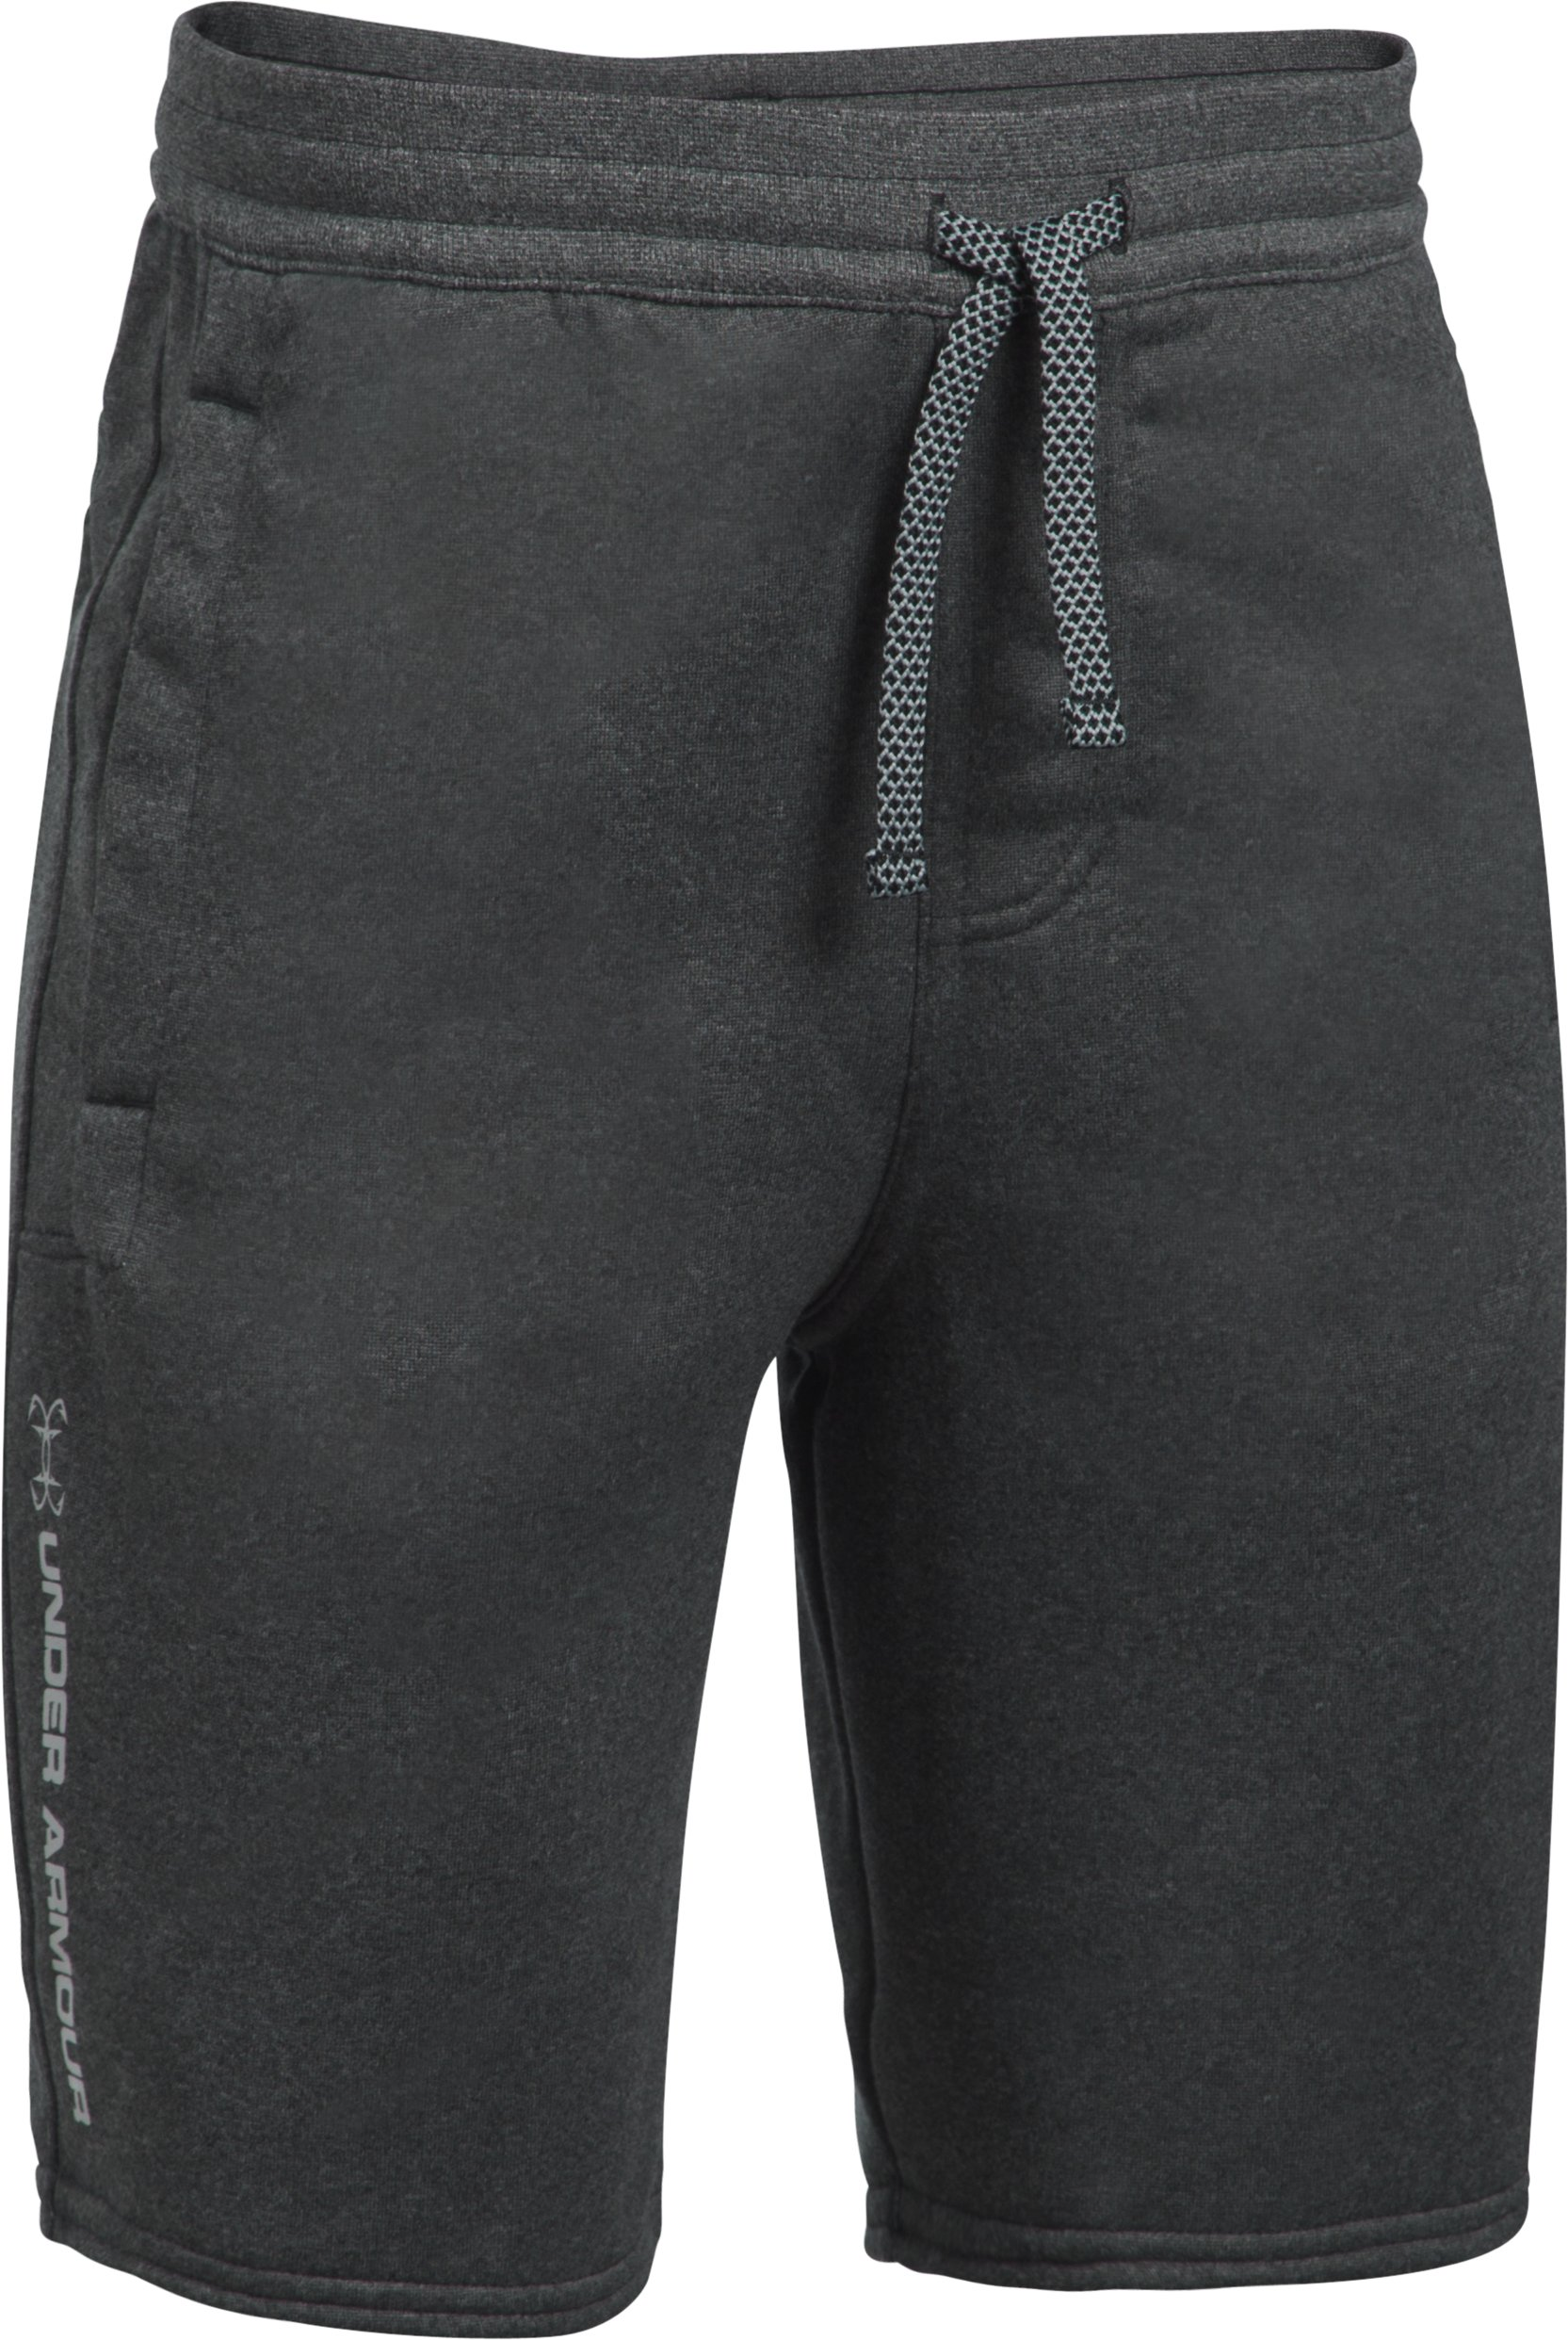 Boys' UA Shoreline Terry Shorts, Asphalt Heather